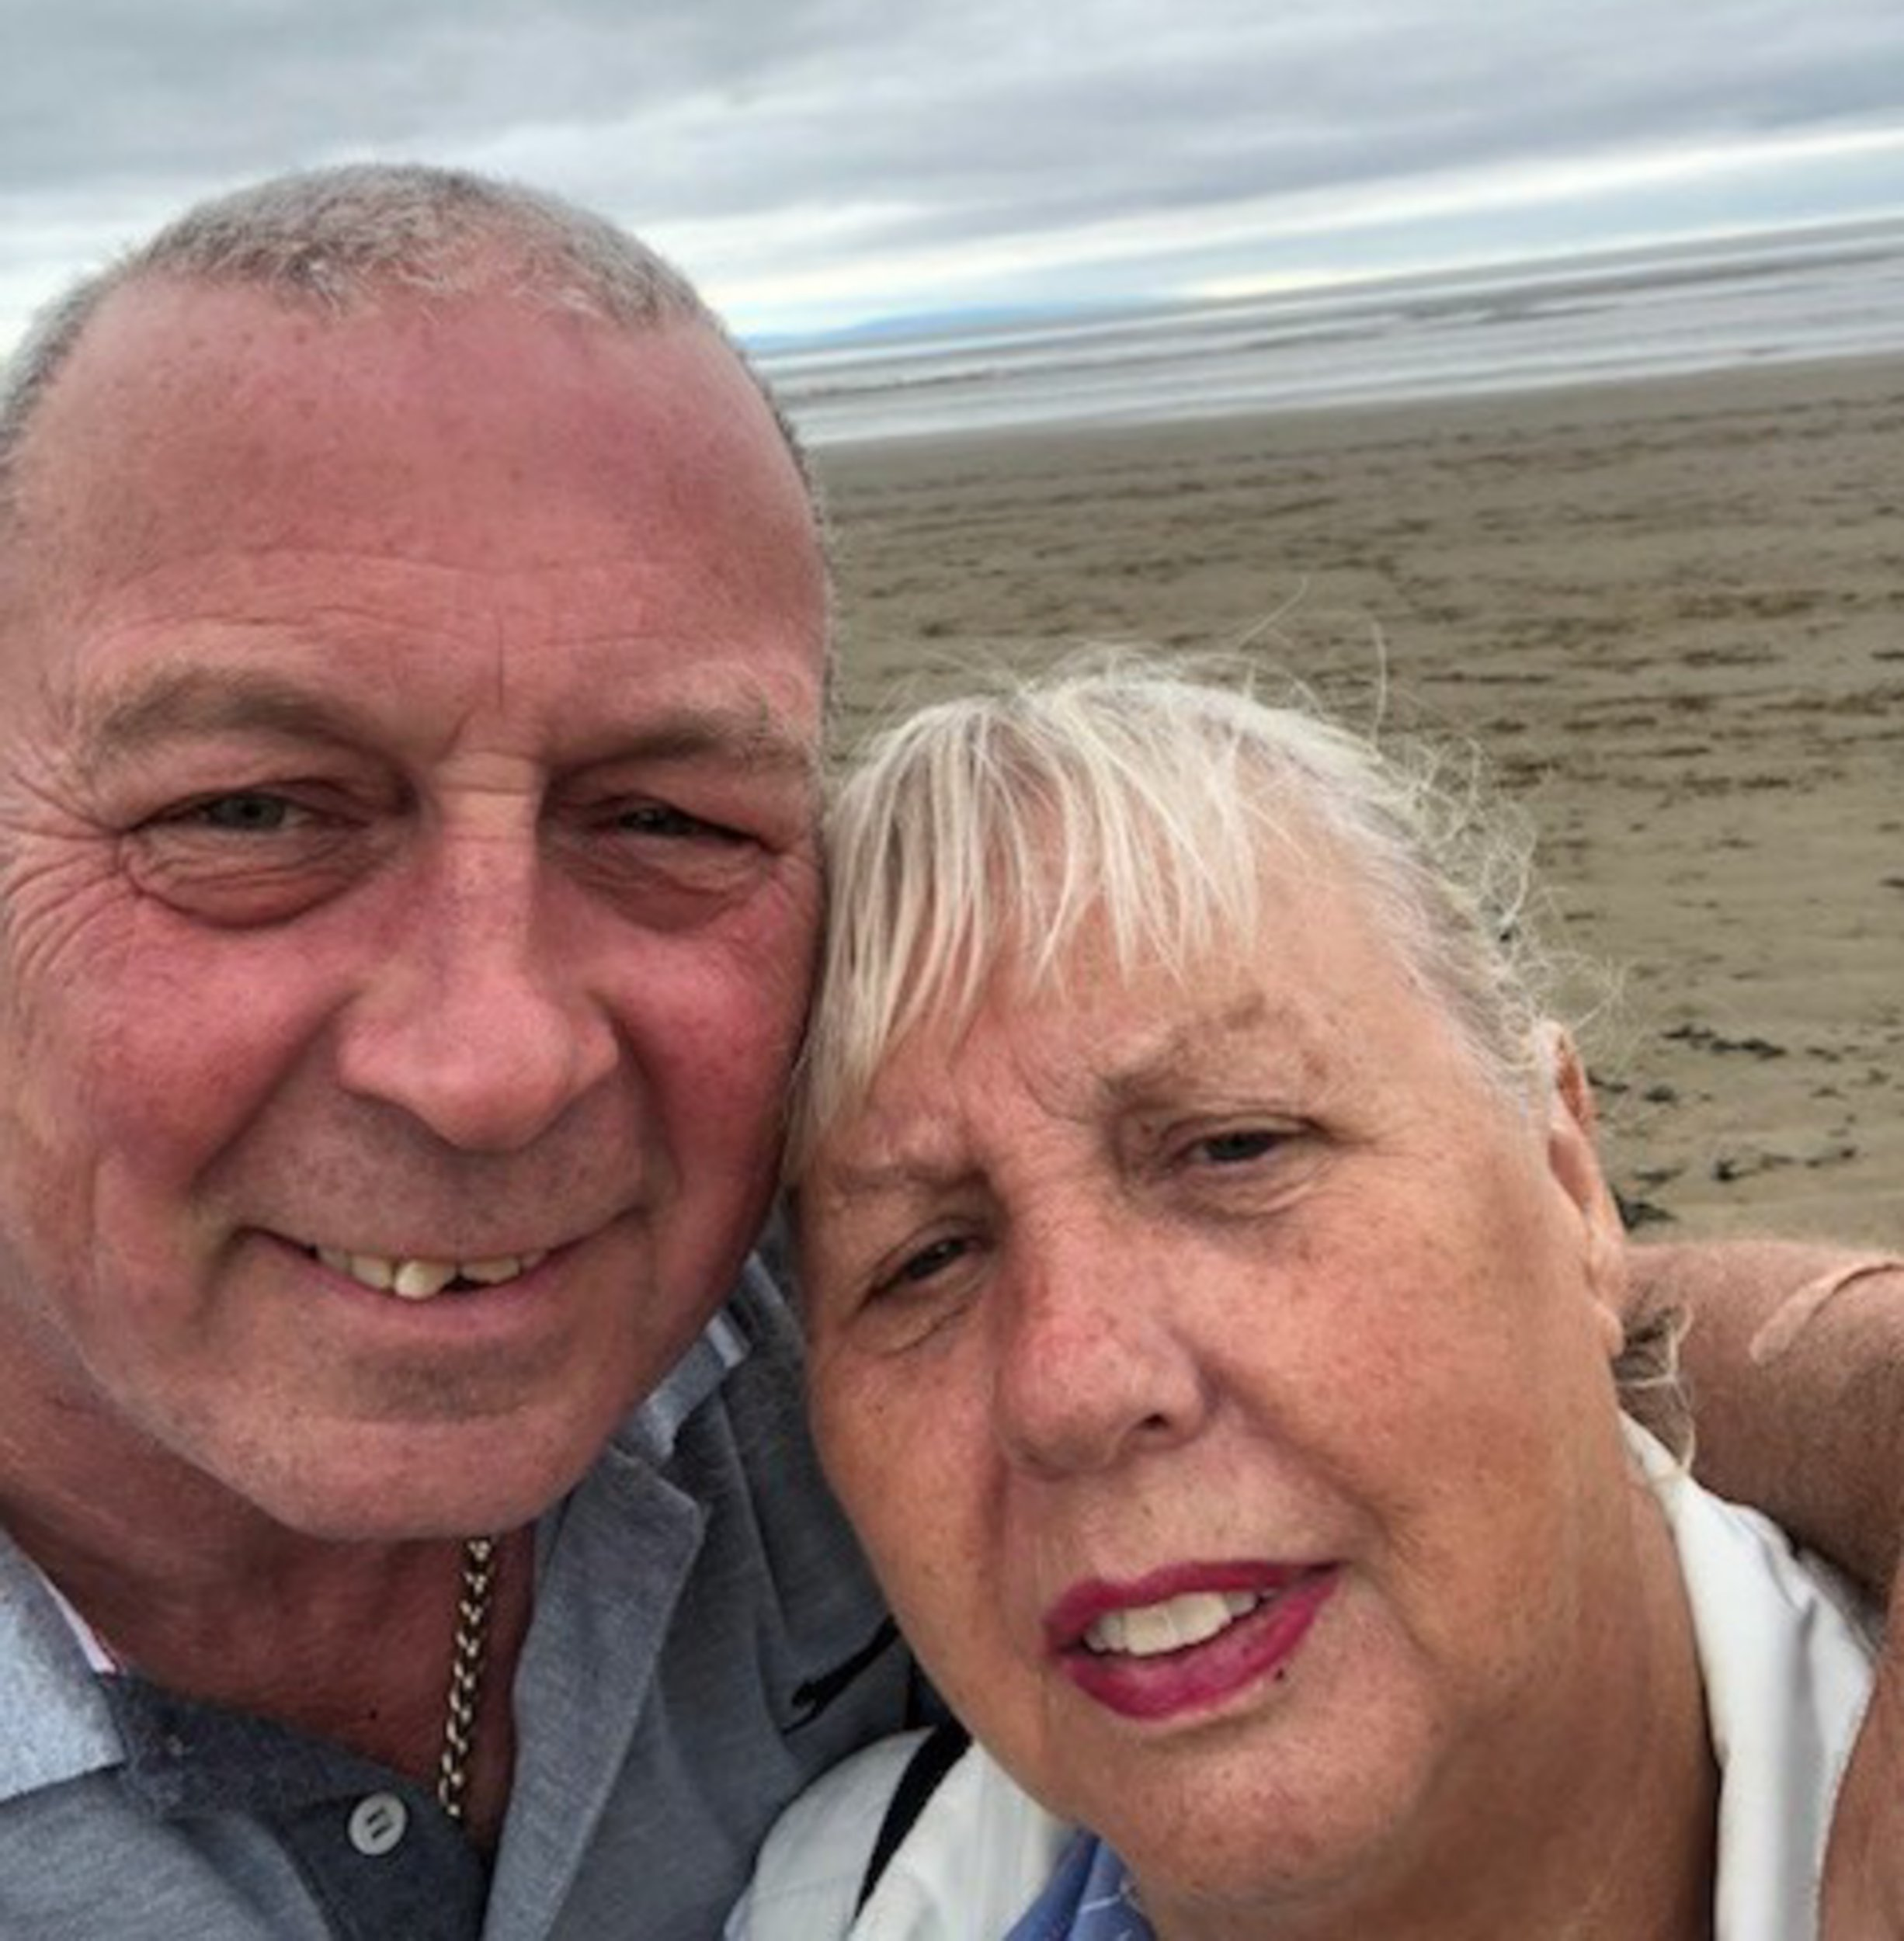 MERCURY PRESS. Somerset, UK. 15/10/18. Pictured: Paul Finlan, 57, and Carol Finlan, 64. Two holidaymakers have expressed their disgust at Wetherspoons after they claim they had their food snatched away mid-bite while they sat outside with their pooch - due to the pubs no dog policy. Paul Finlan, 57, and Carol Finlan, 64, claim they were publicly embarrassed by the ridiculous' behaviour that left red-faced Carol distressed in front of other customers earlier this month. As they sat at an outdoor table at the front of the Dragon Inn in Weston-super-Mare, Somerset, and tucked into their meals, Paul claims their meals and drinks were swiped from the table by a pub manager. SEE MERCURY COPY